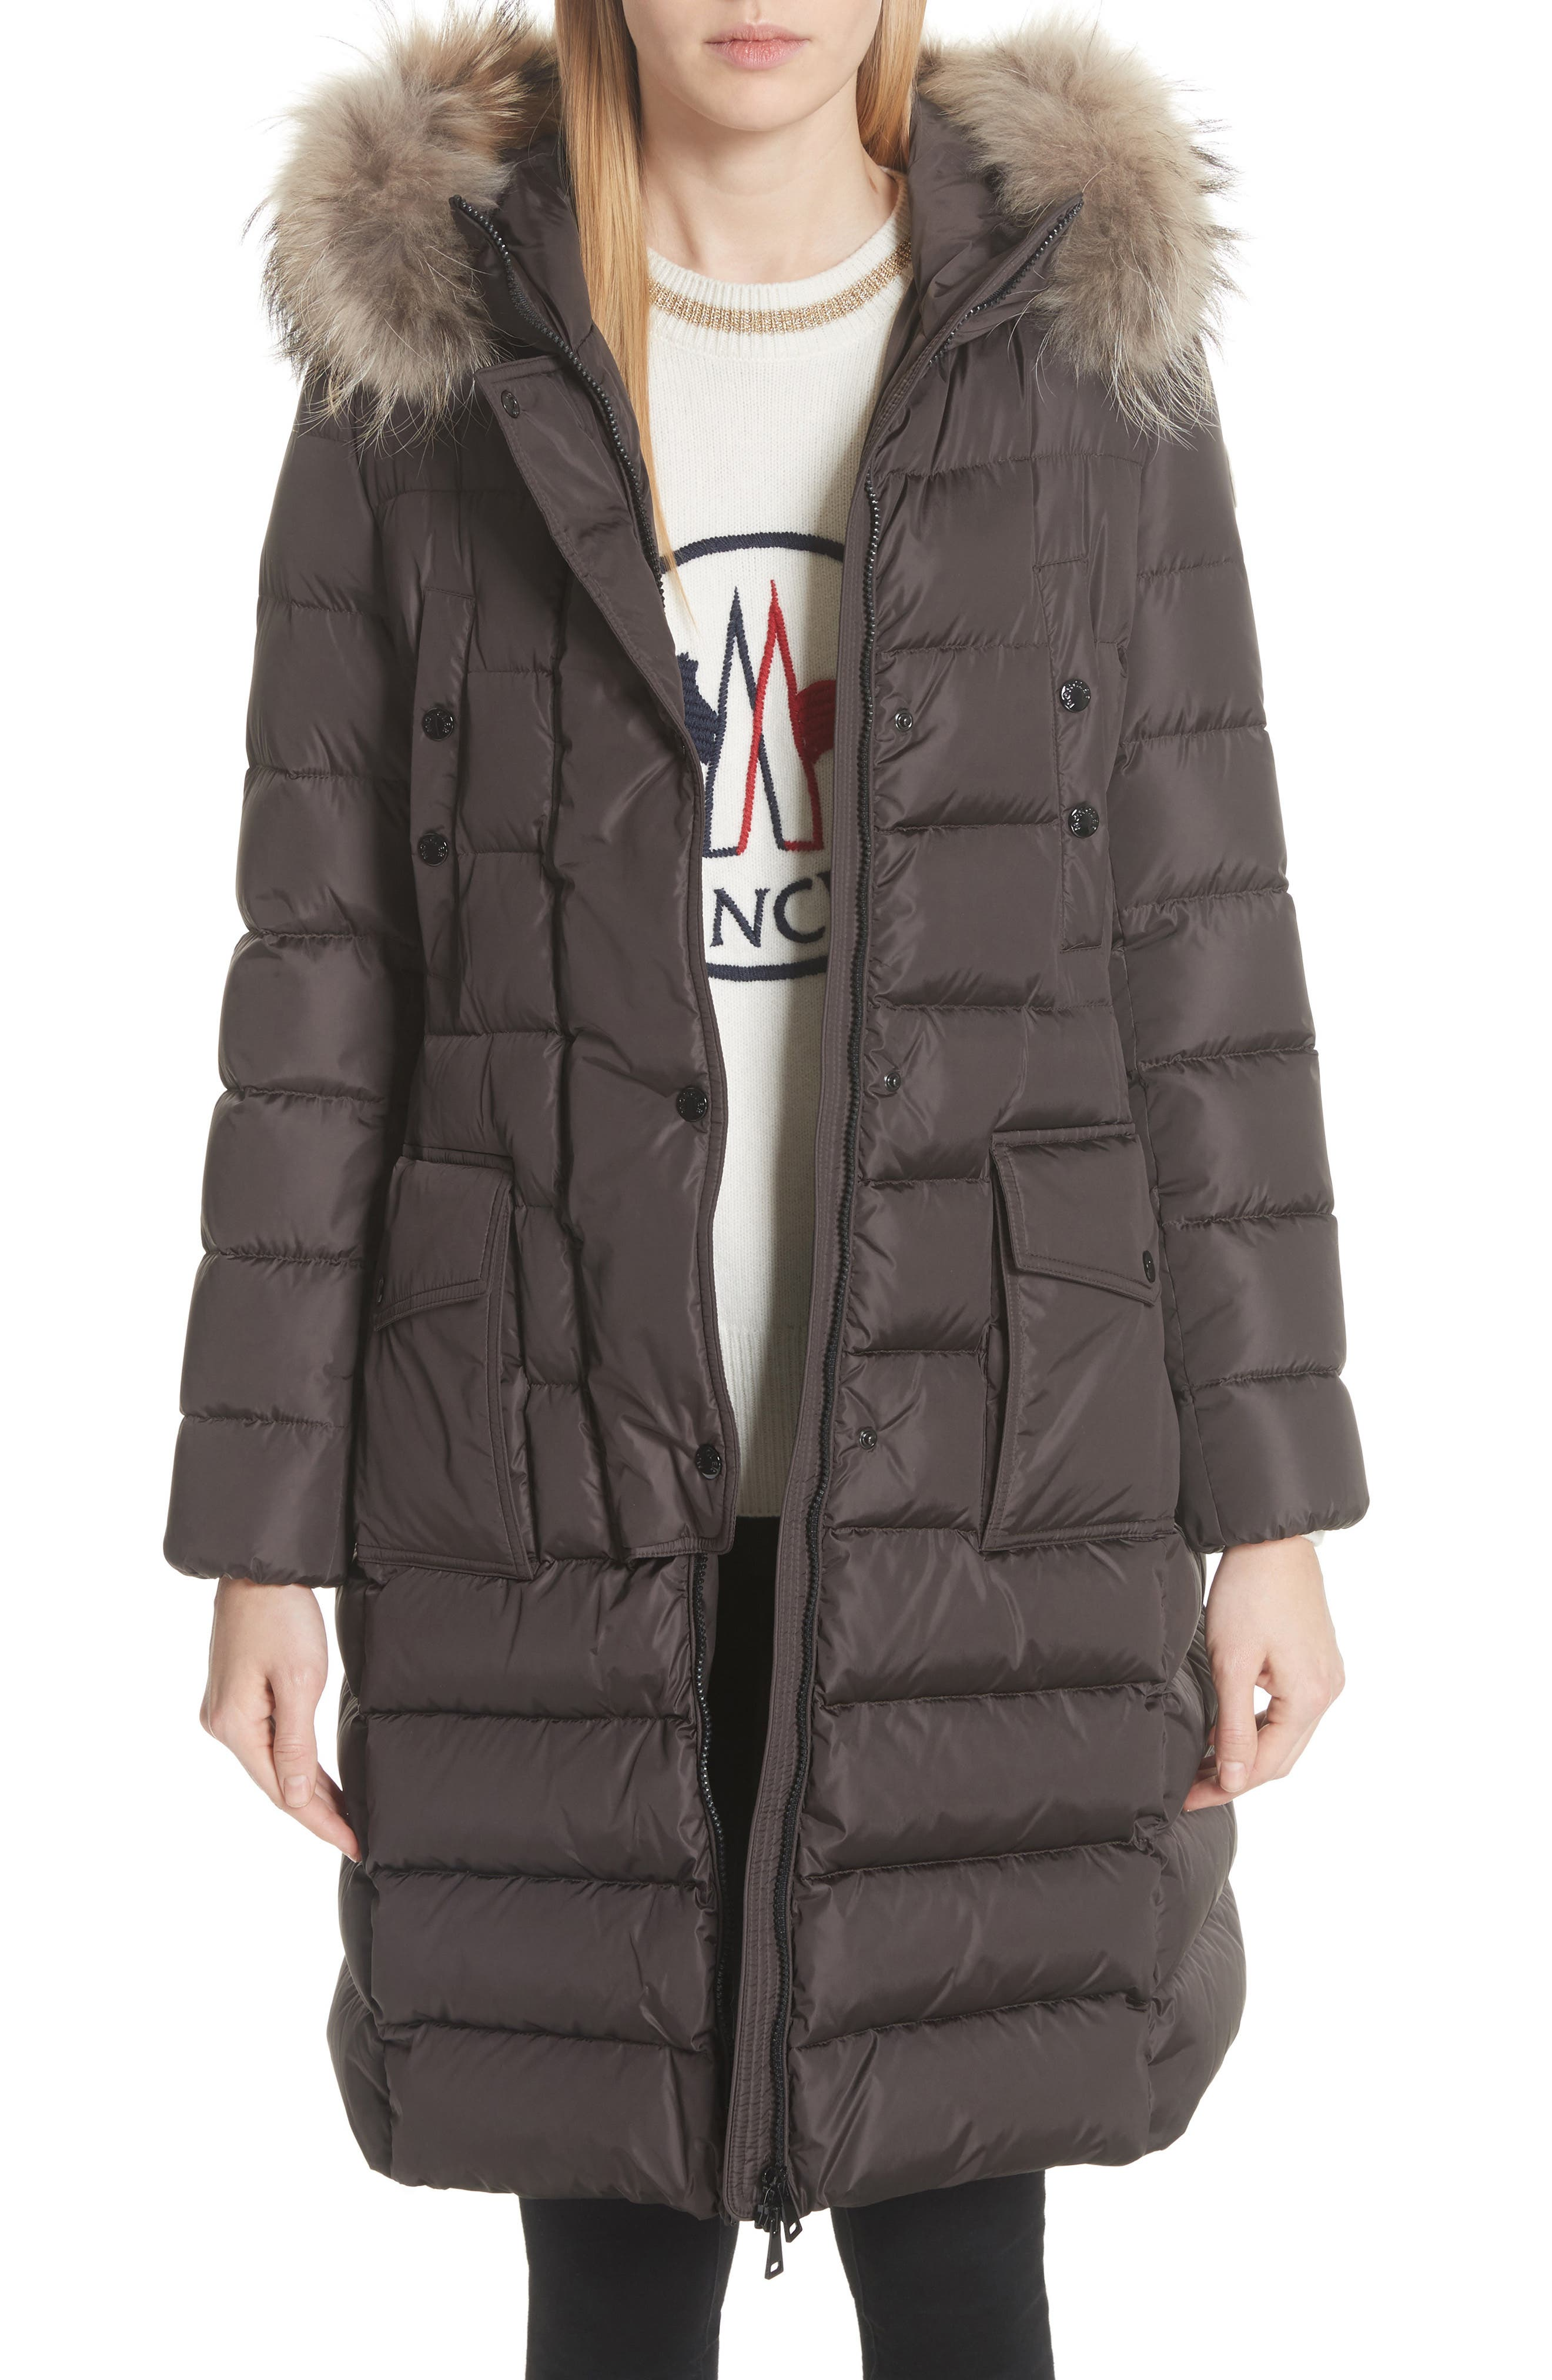 MONCLER, 'Khloe' Water Resistant Nylon Down Puffer Parka with Removable Genuine Fox Fur Trim, Main thumbnail 1, color, BROWN